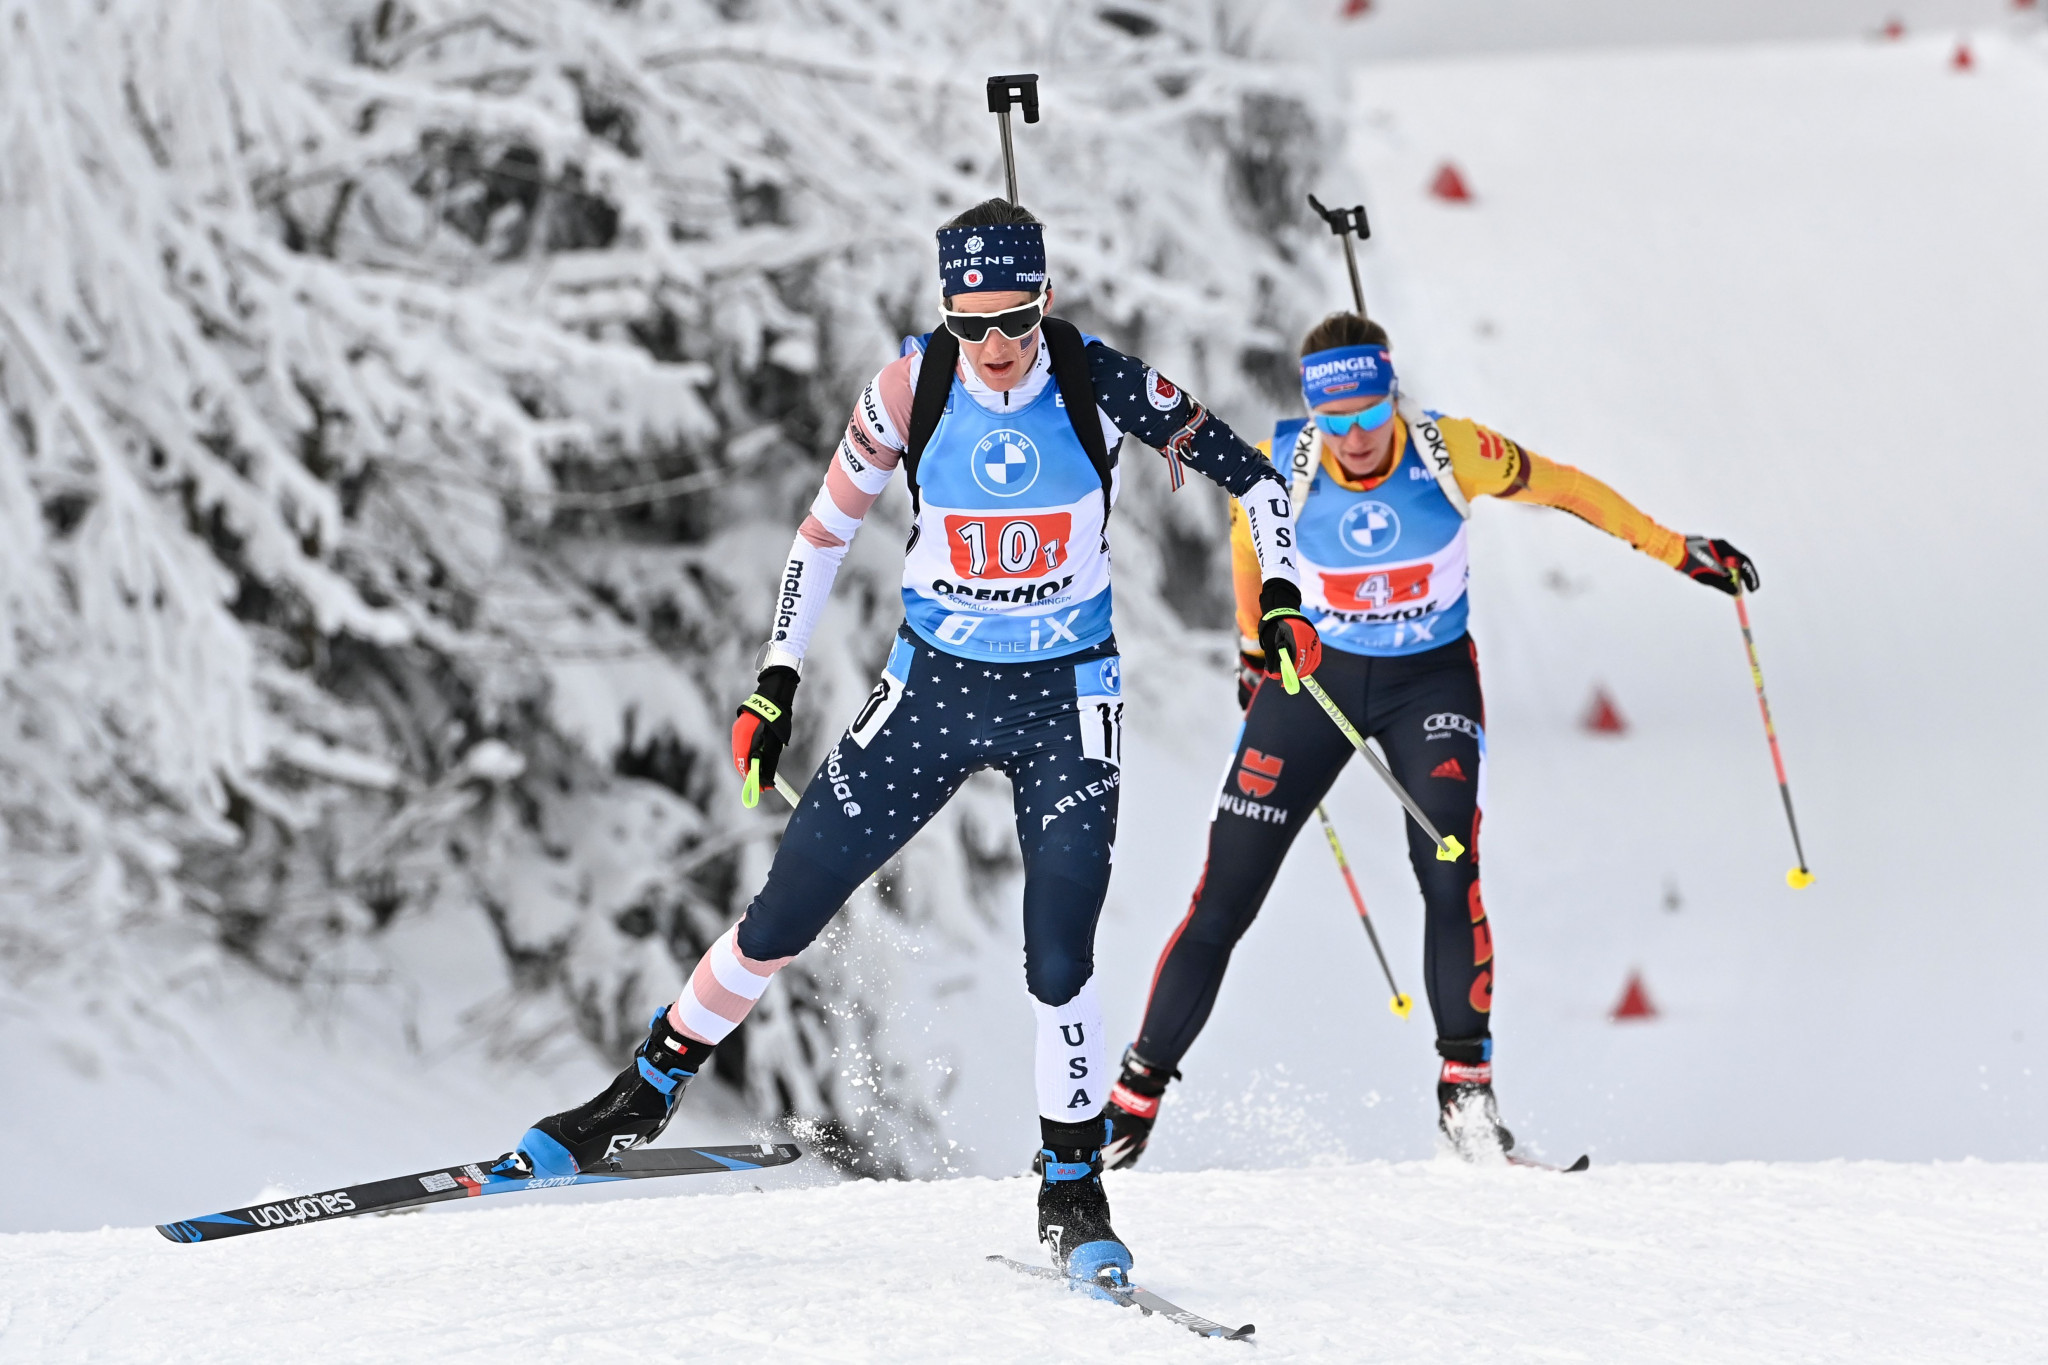 US Biathlon hoping revamped Lake Placid venue will stage World Cup legs from 2026